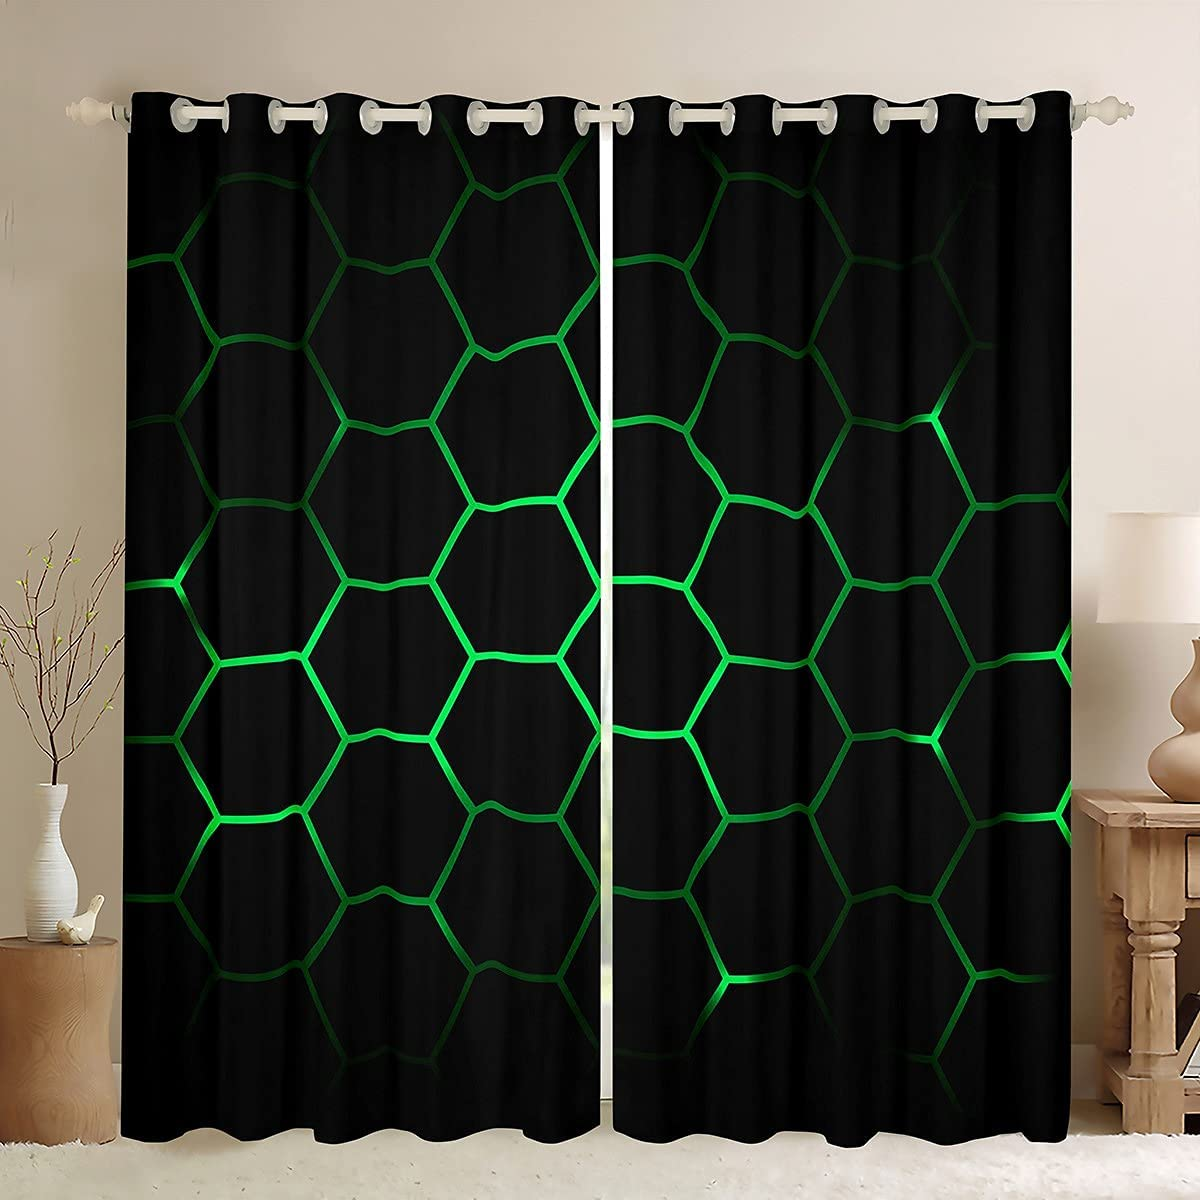 Hexagonal Window Curtains for Bedroom H Recommended Living Al sold out. 3D Geometric Room